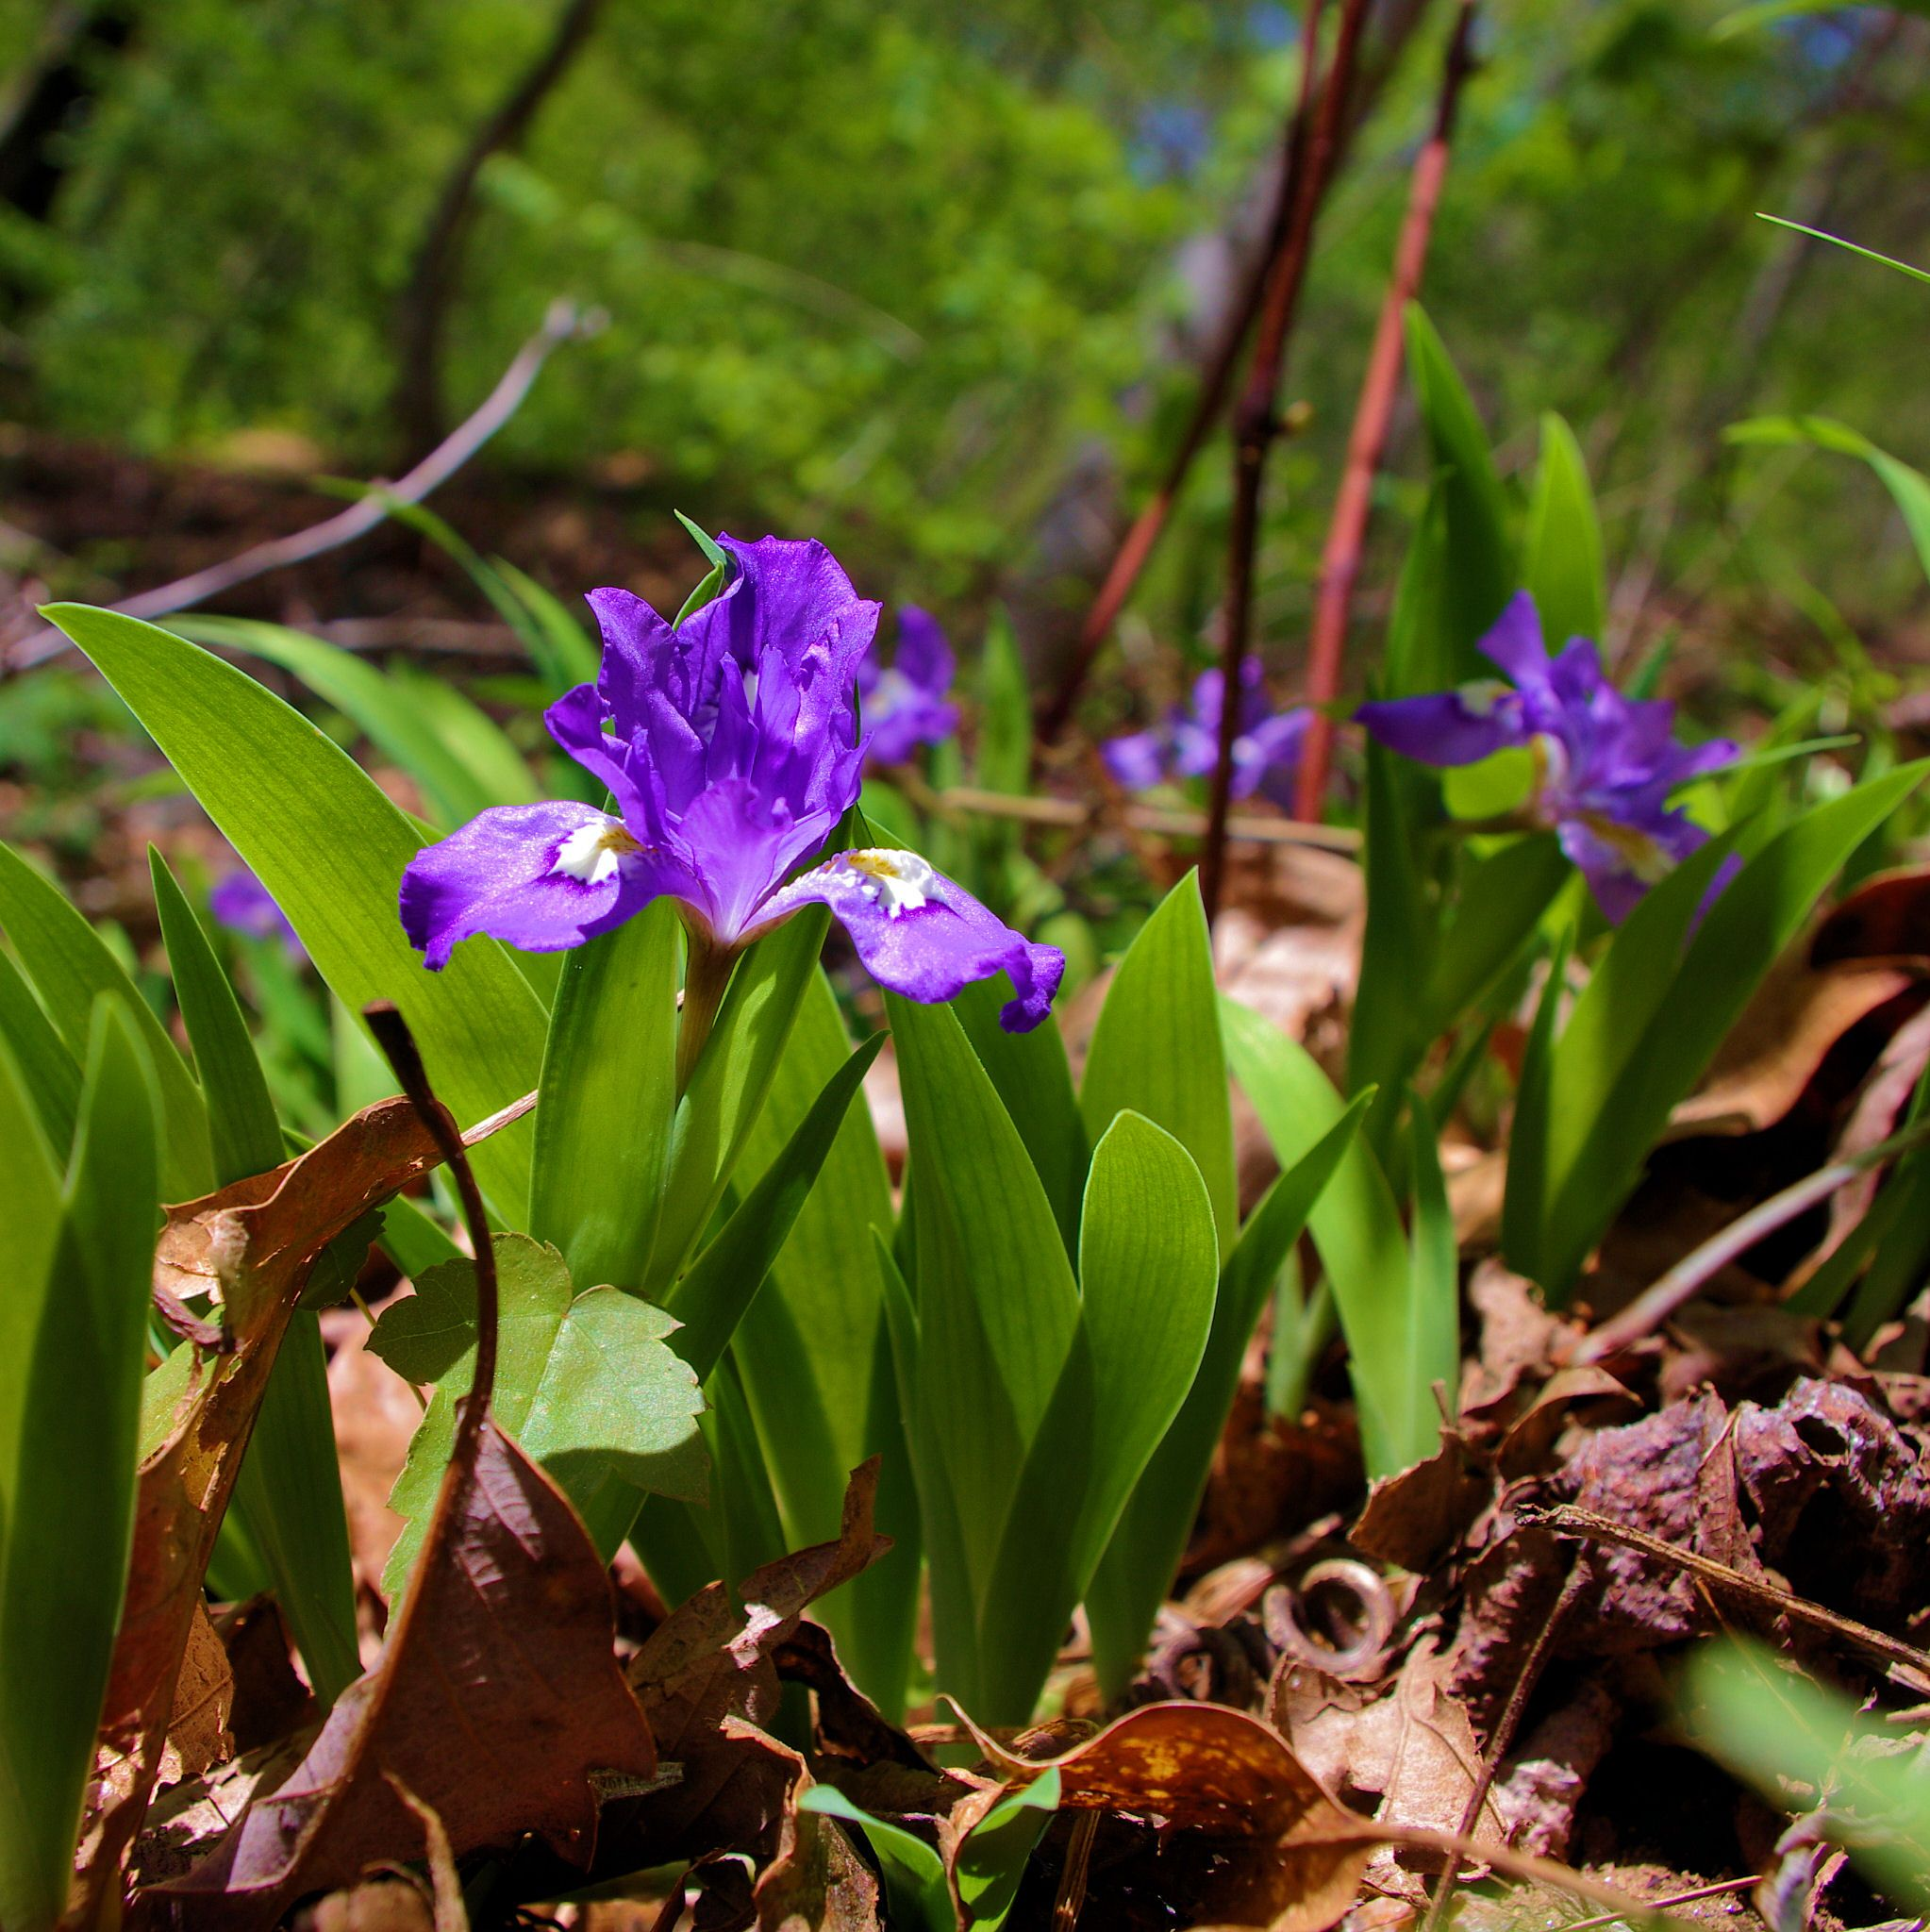 Spring wildflowers along a hiking trail in the nc mountains near spring wildflowers along a hiking trail in the nc mountains near asheville dhlflorist Image collections